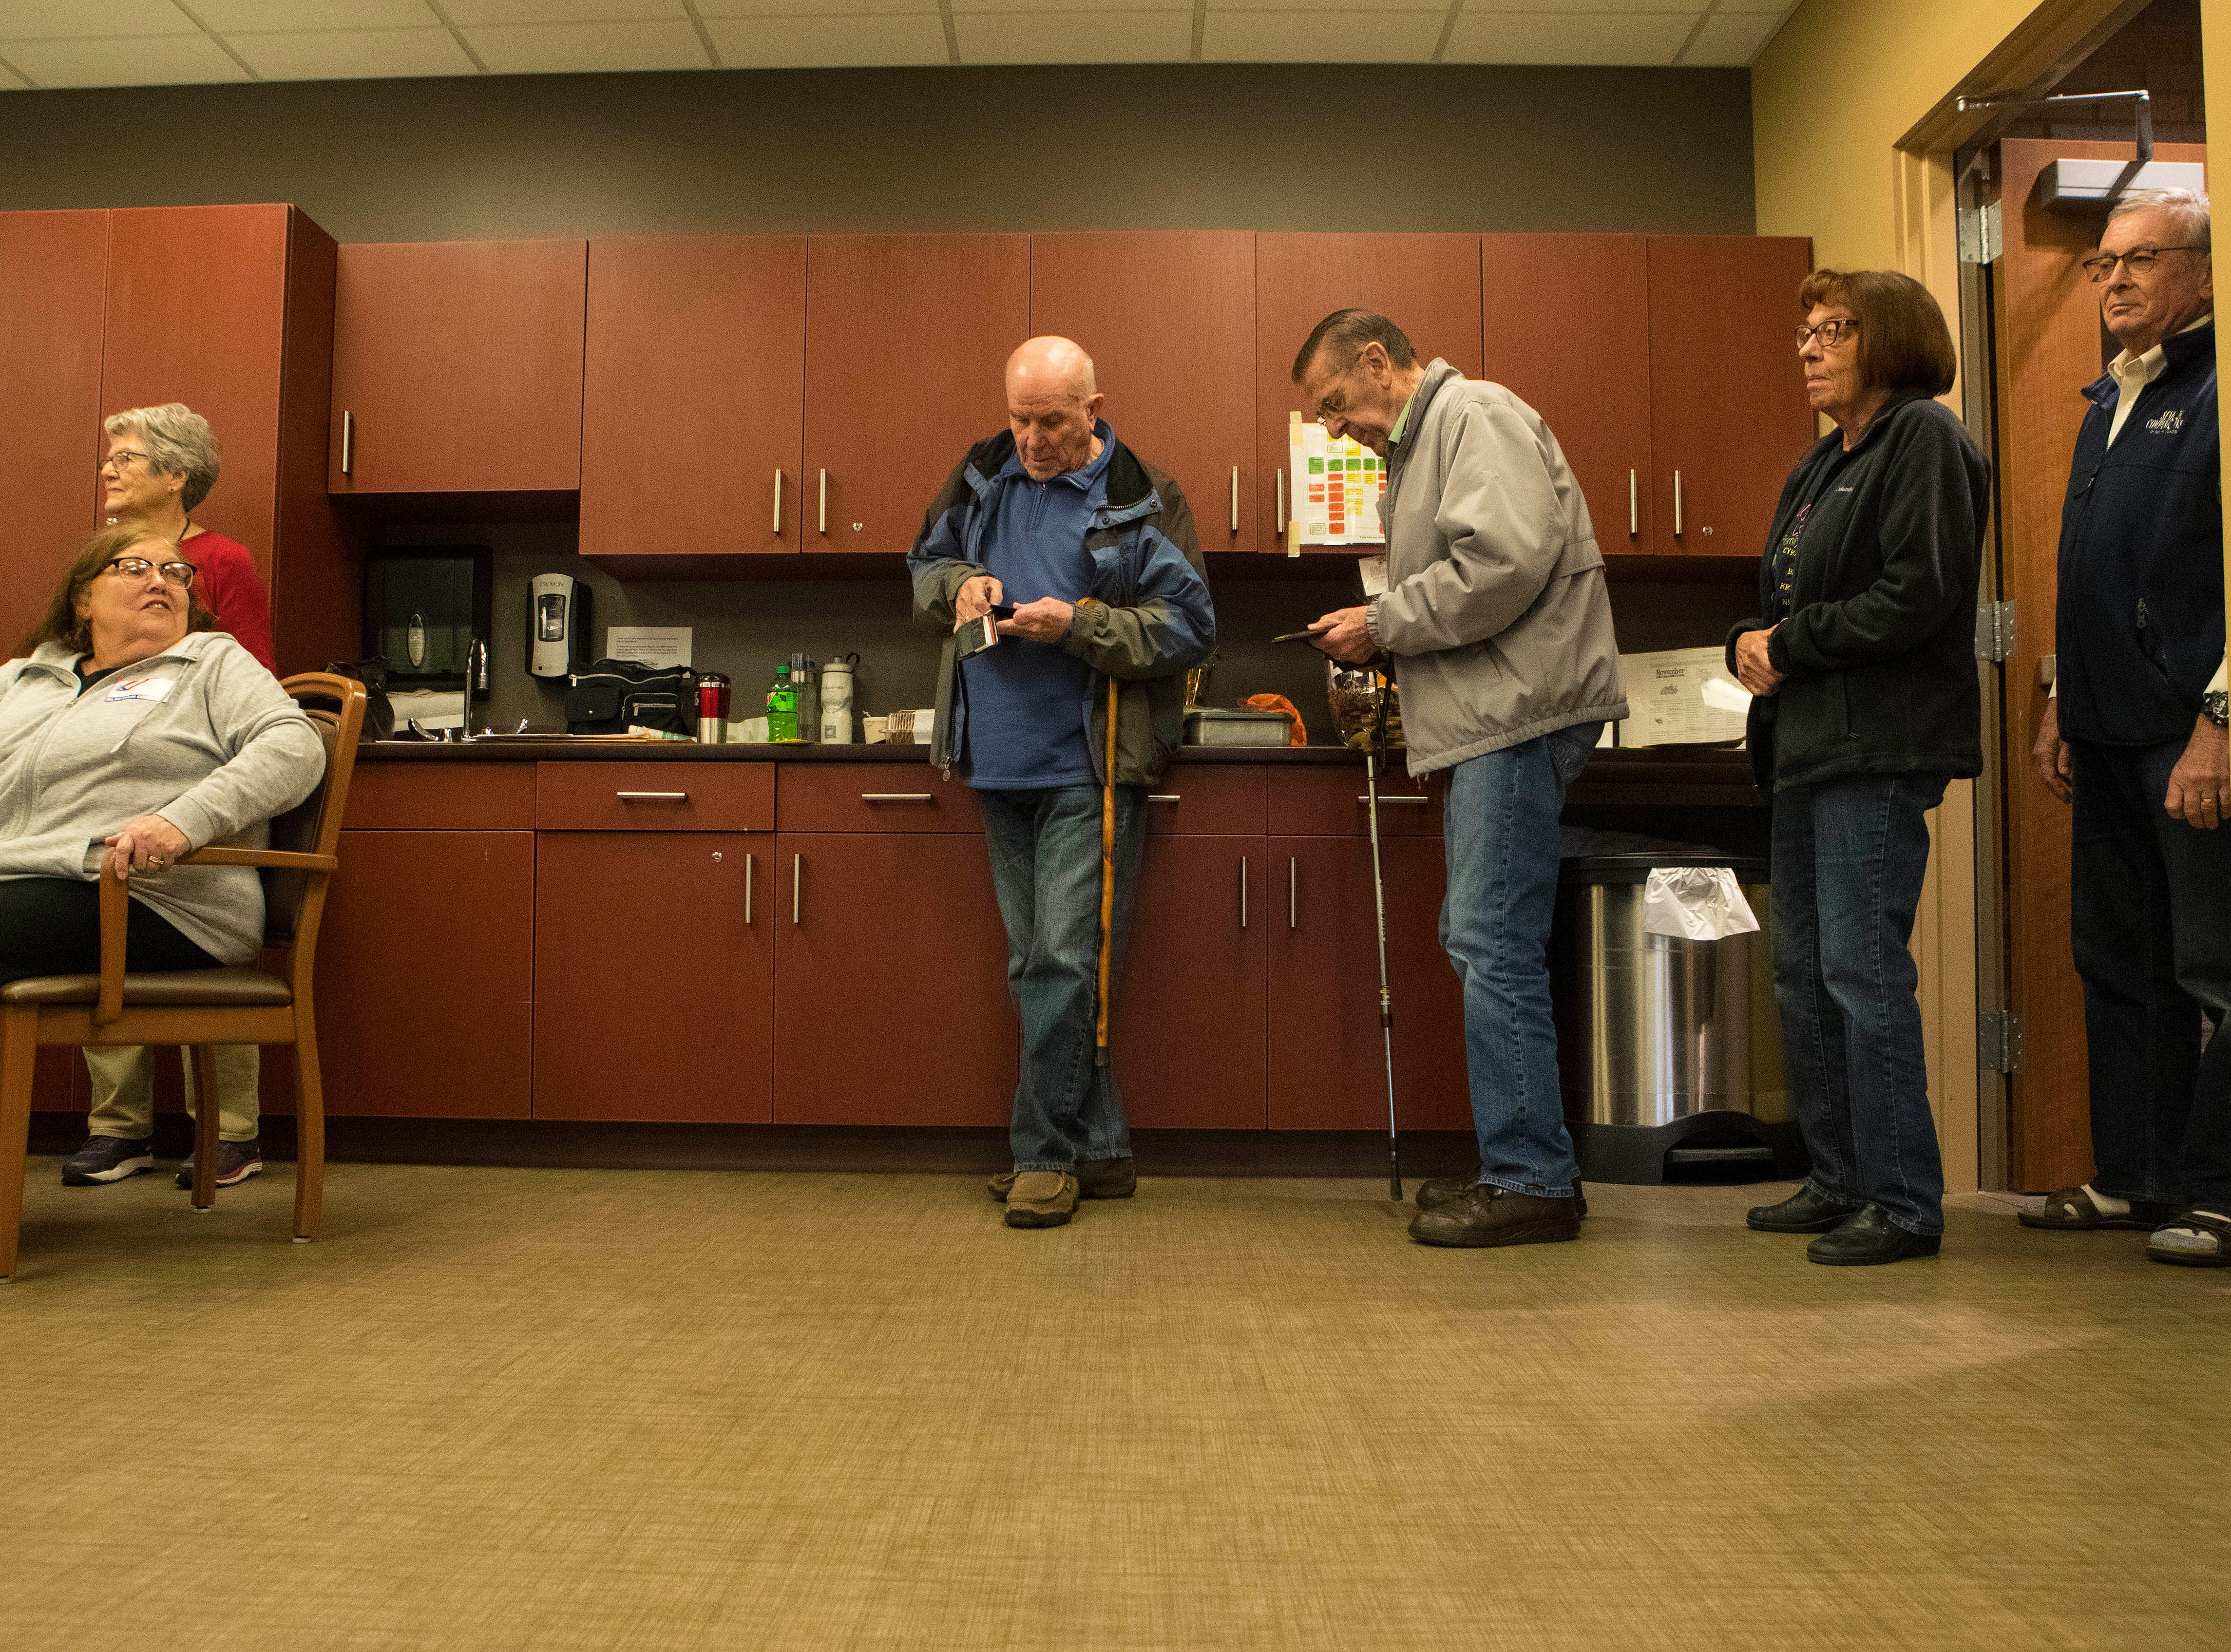 Sioux Falls residents wait in line to vote at Avera Prince of Peace Retirement Community in Sioux Falls, S.D., Tuesday, Nov. 6, 2018.